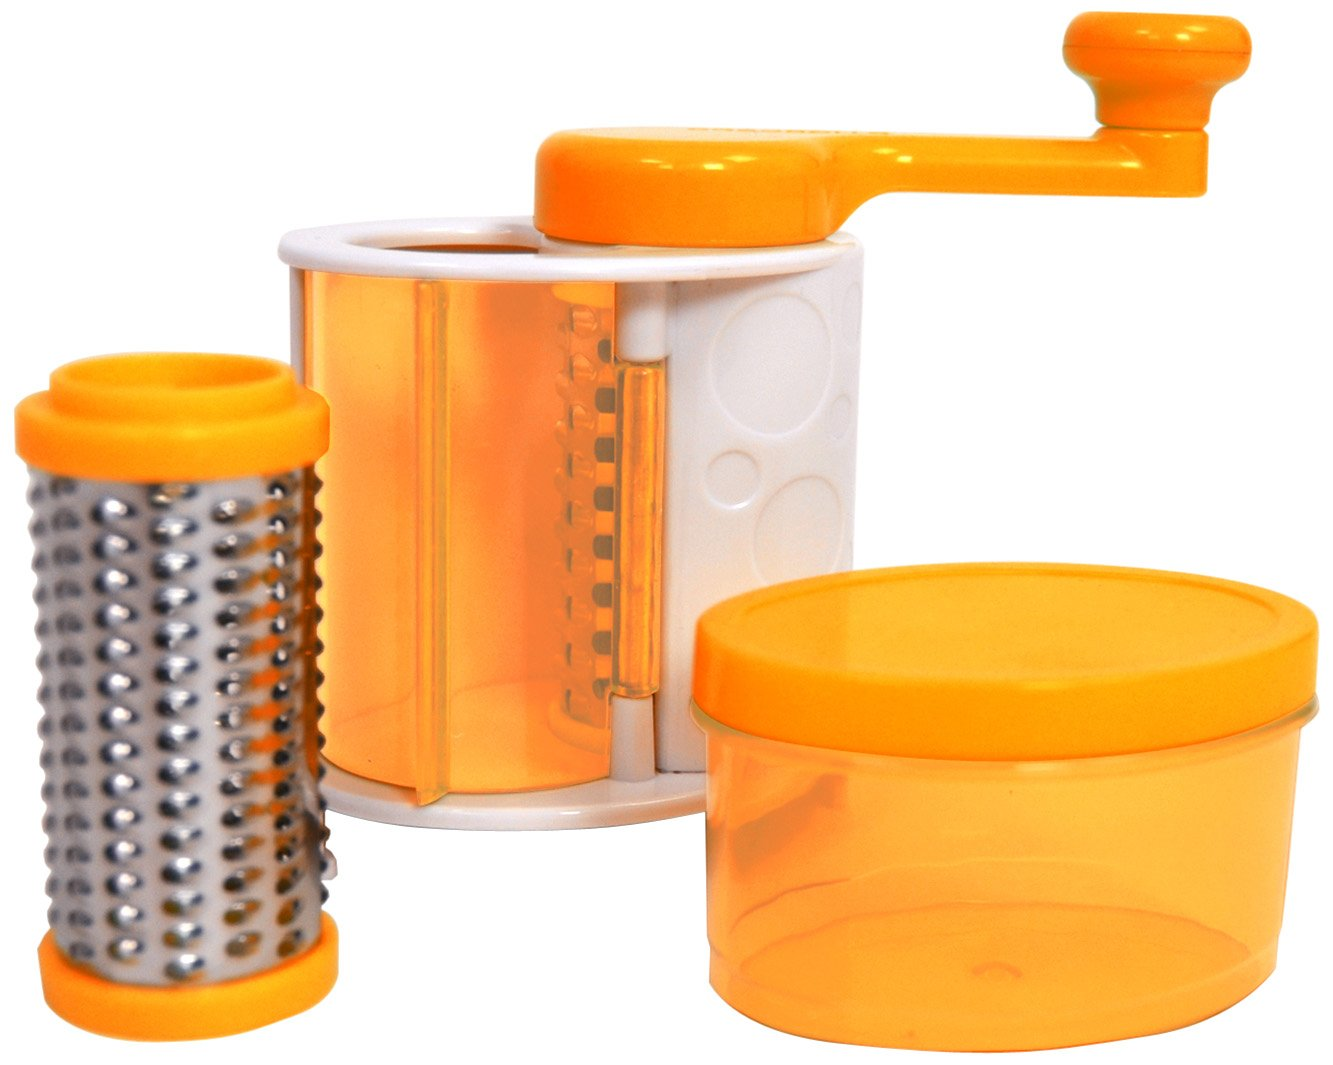 Casabella Grate'n Store Rotary Cheese Grater, orange 53688